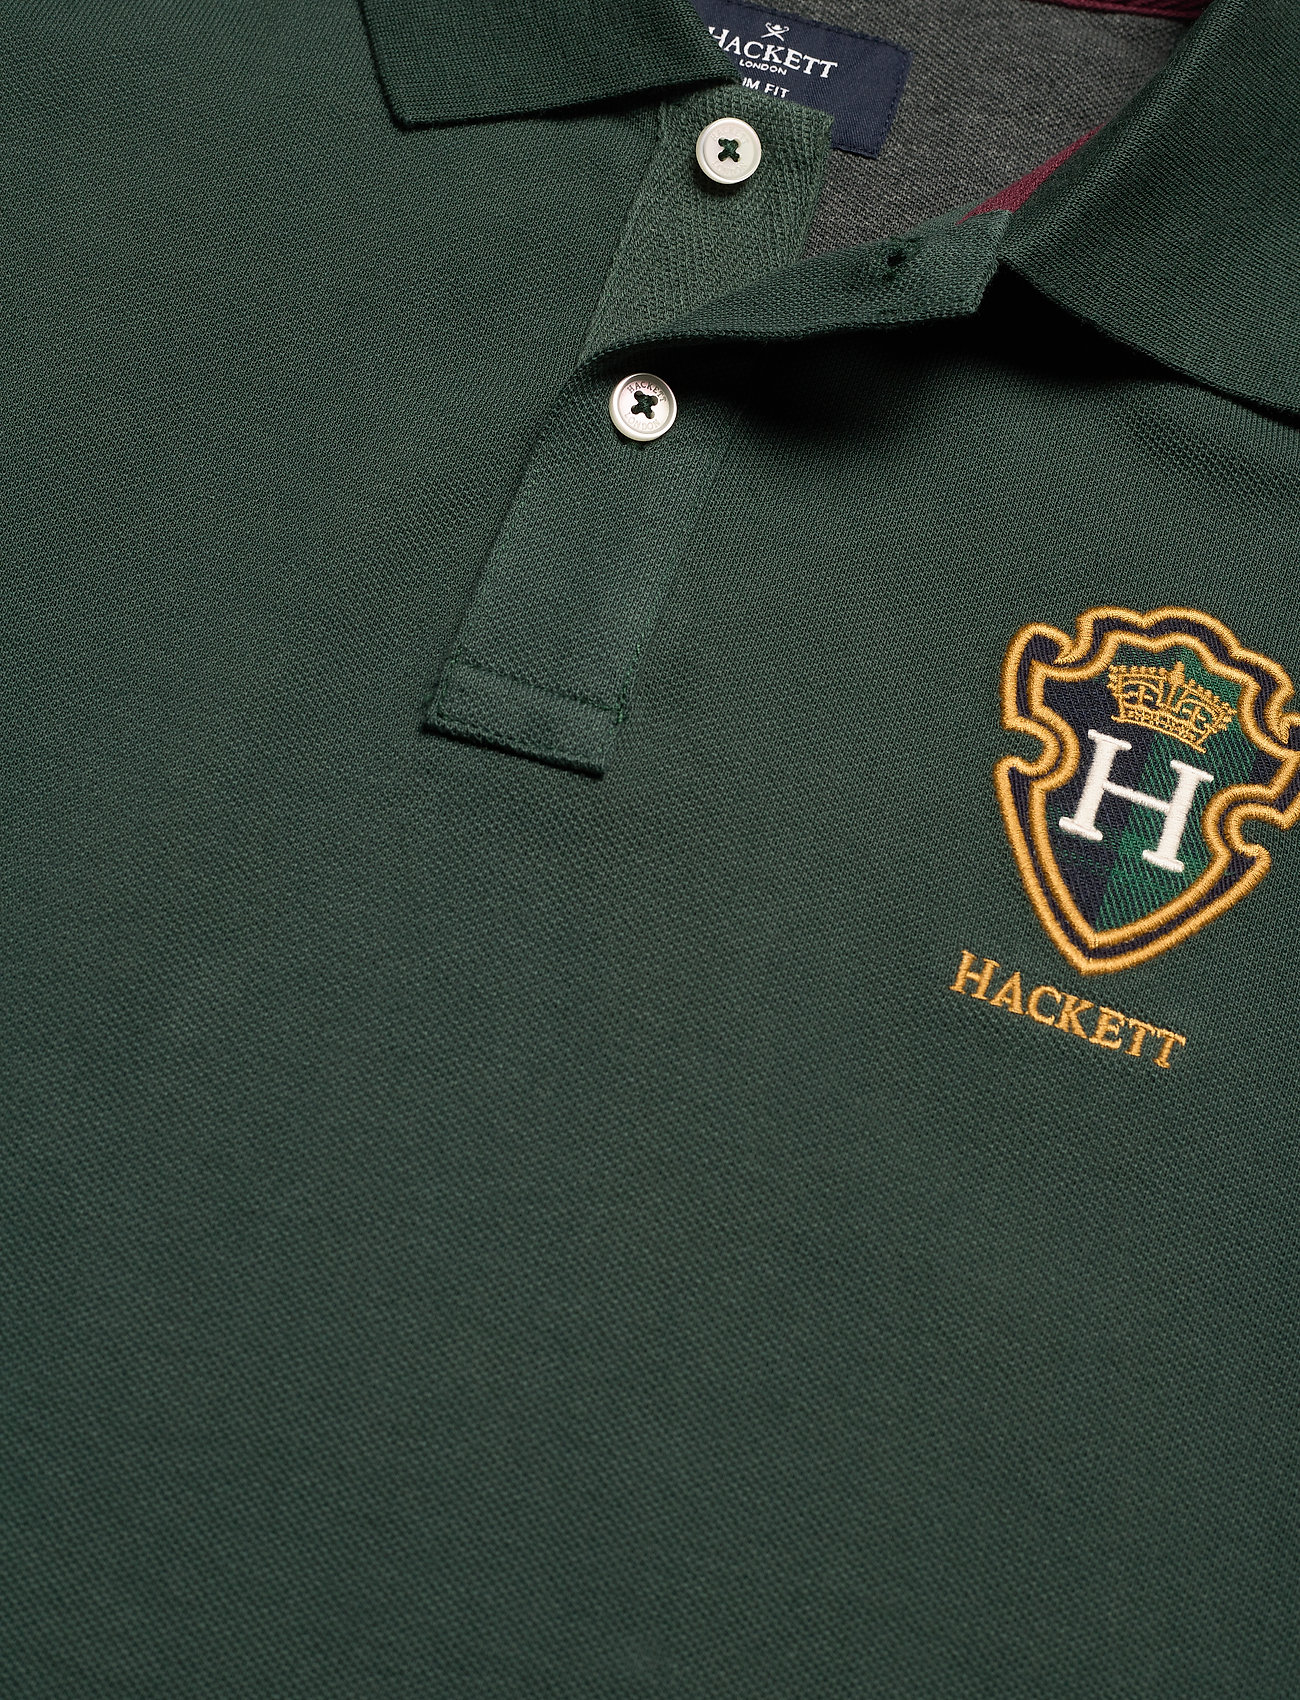 Hackett London BLACKWATCH CREST - Poloskjorter 6FN - Menn Klær